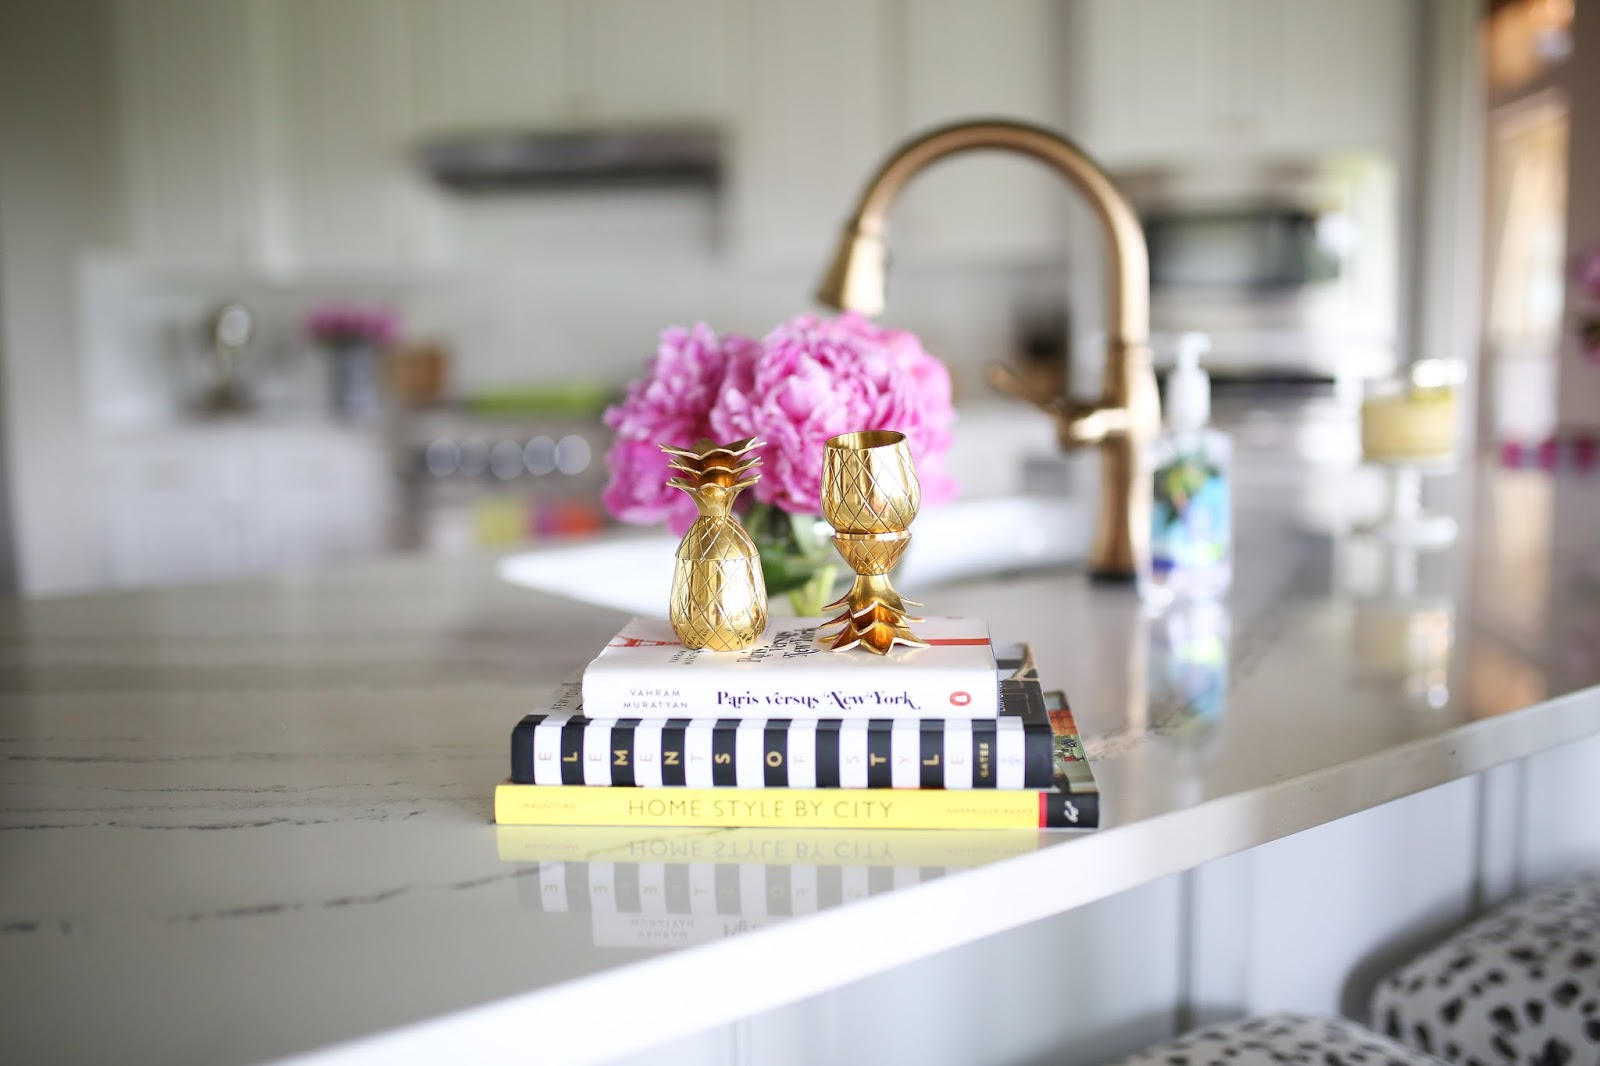 emily gemma, emily gemma blog, the sweetest thing blog, all white kitchen, gold kitchen faucet, cute ice cubes, summer, fun summer ideas, pretty kitchen, beautiful faucet, cactus, cactus ice cubes, white kitchen sink, party ideas, cambria brittanica countertops, painters, golden doodle, cactus party lights, peonies, pink peonies, pineapple, pineapple decor, pink ice cube tray, green ice cube tray, party ideas, kid activities, home decor, white kitchen